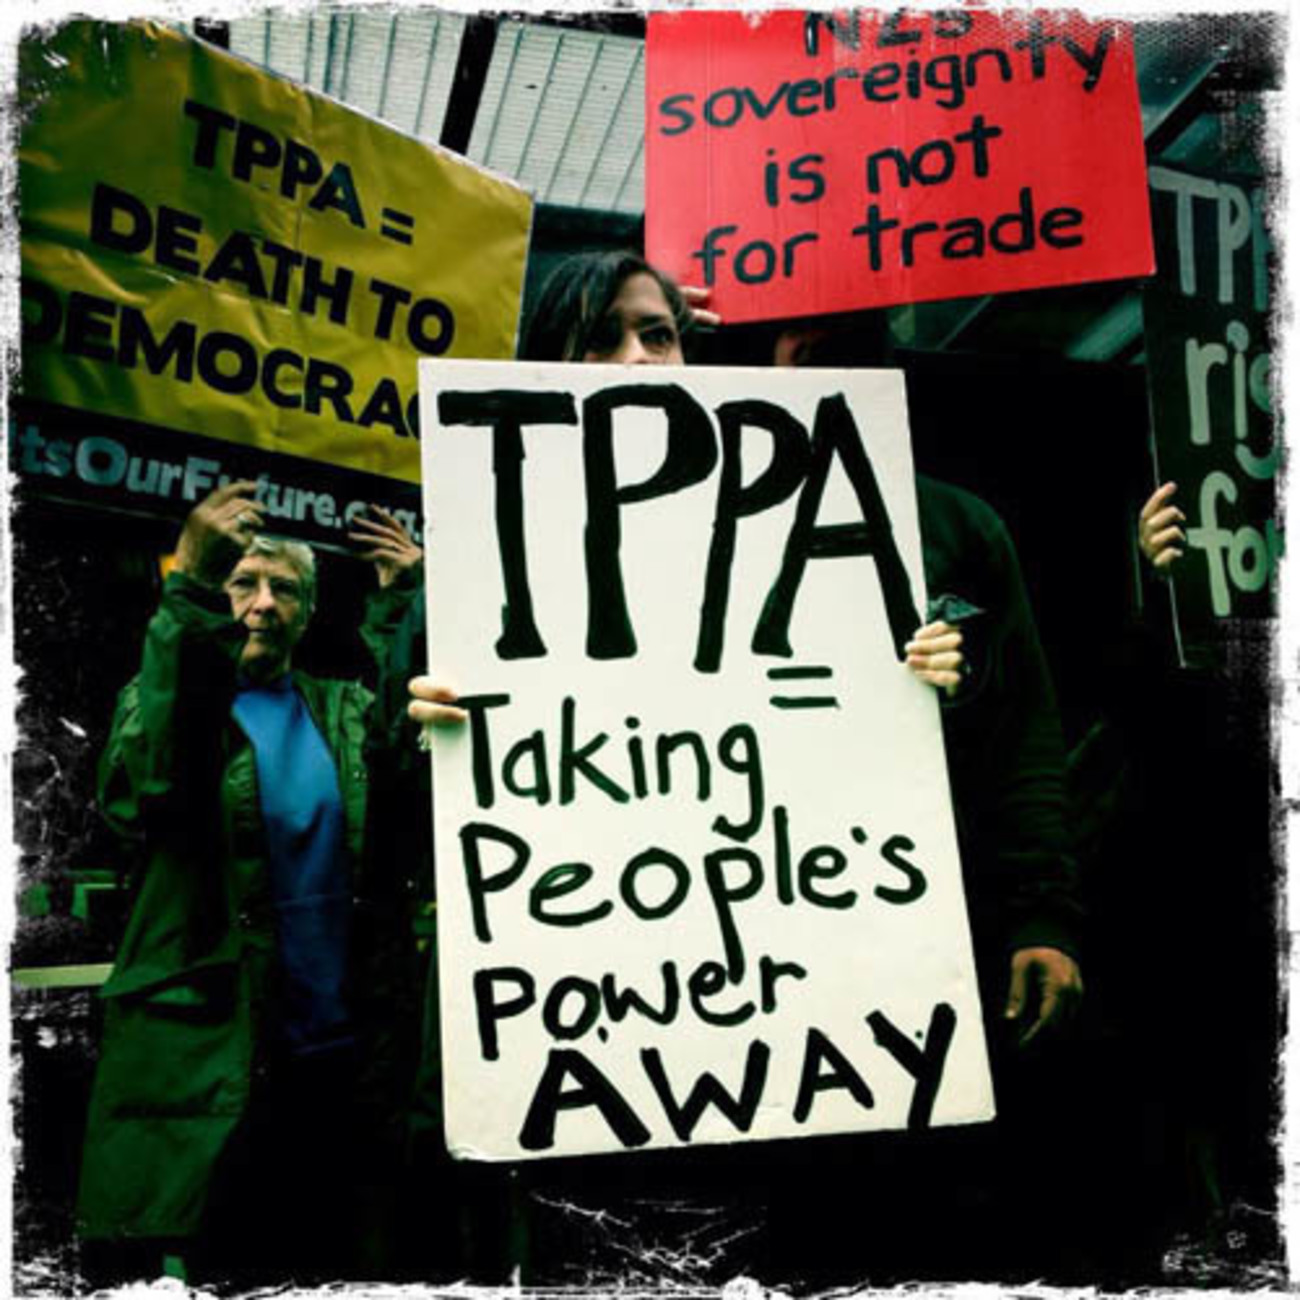 Trade unionists, activists 'confused' on TPPA